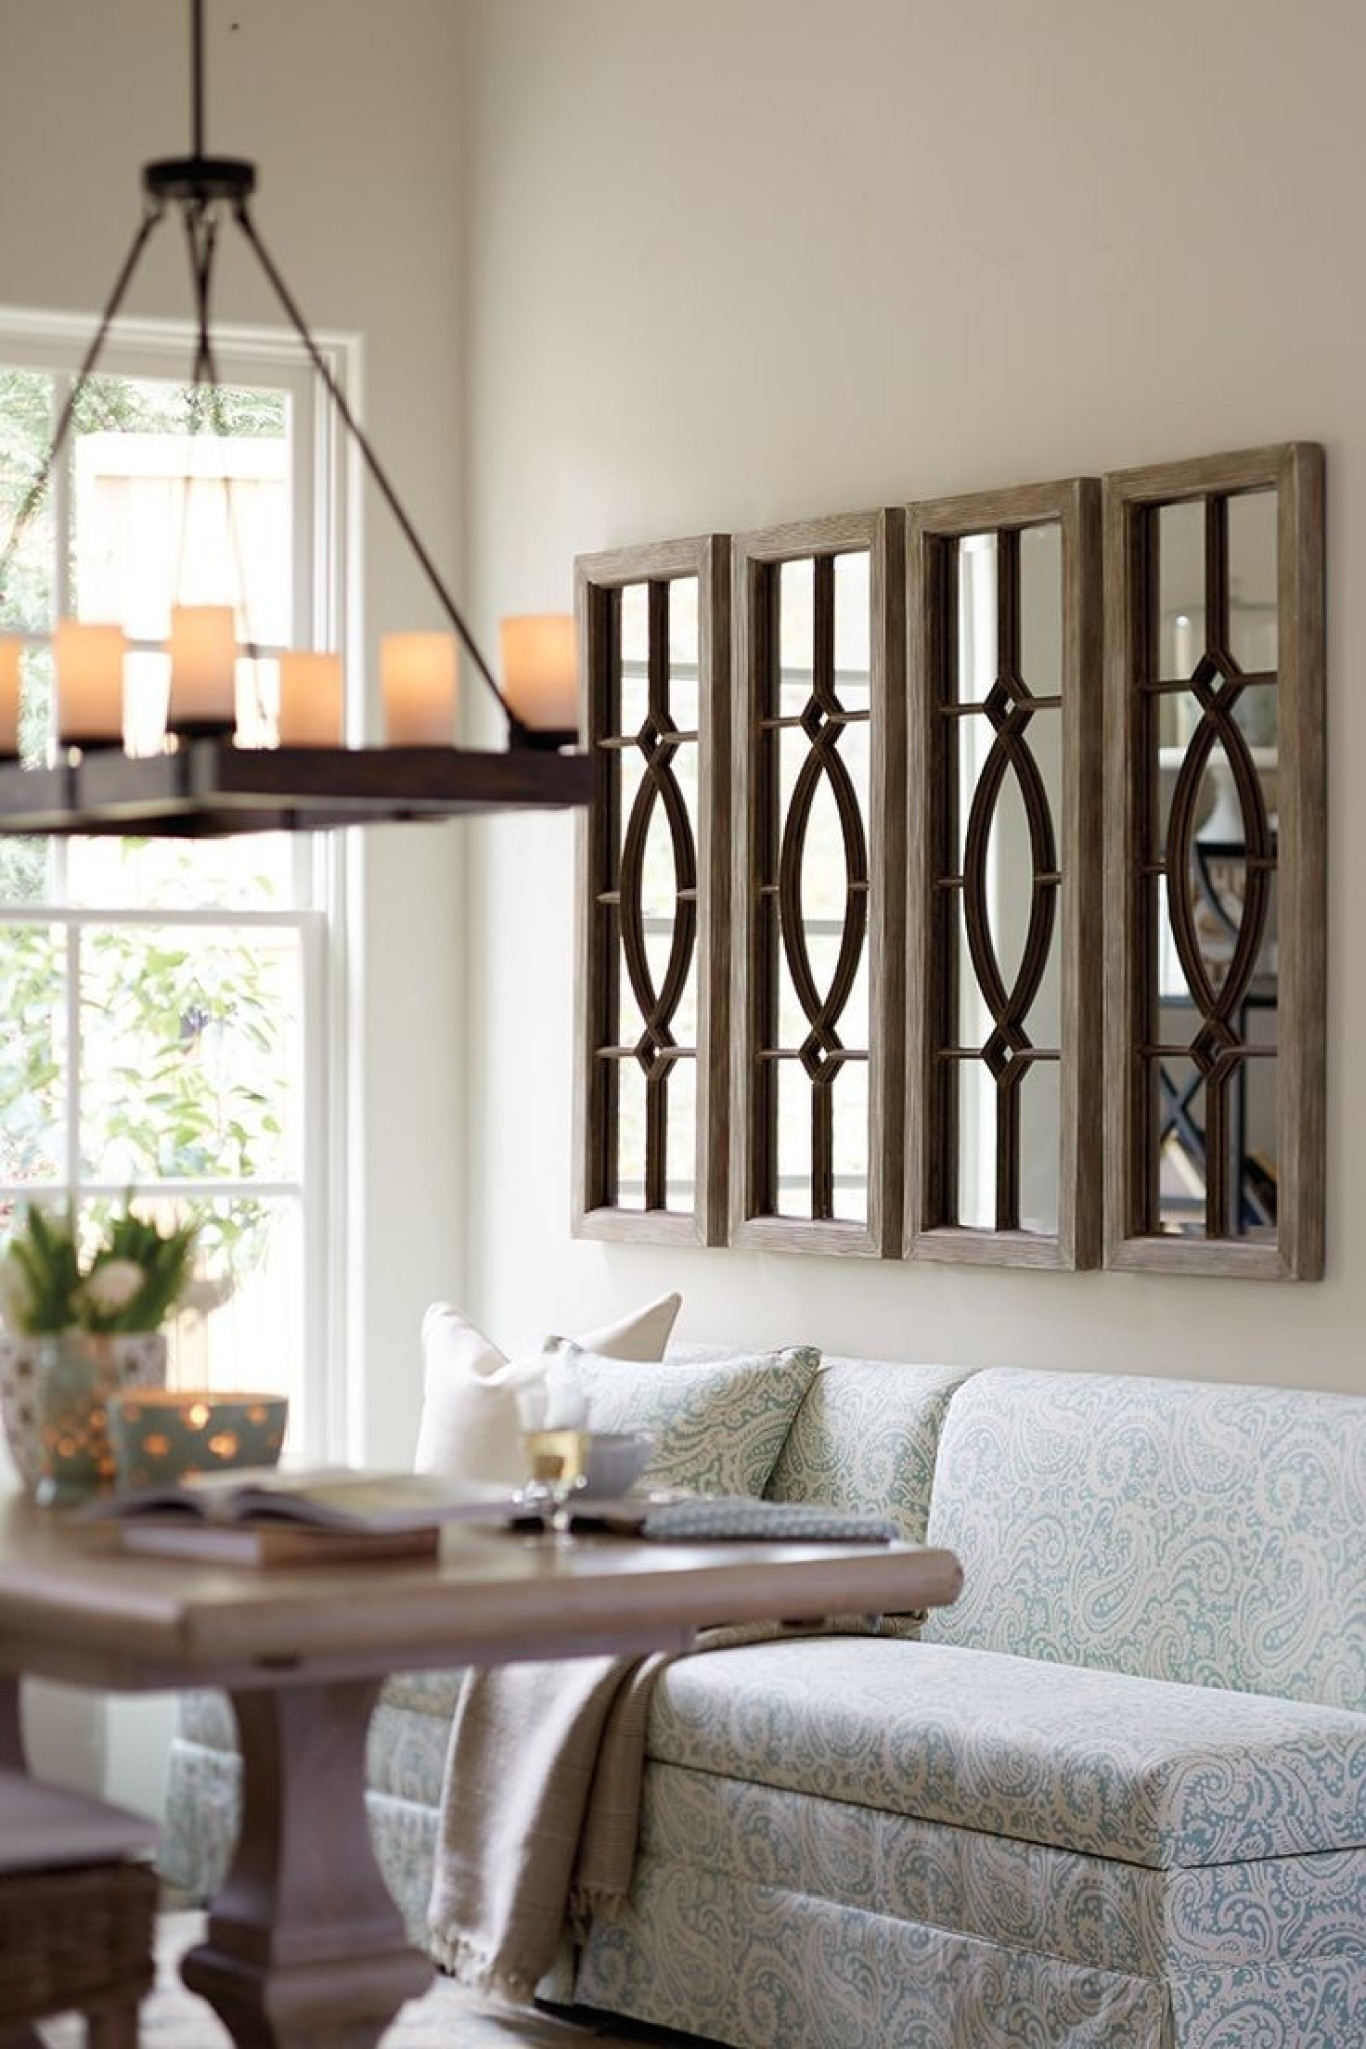 Wall Decor Throughout Most Current Wall Accents For Dining Room (View 14 of 15)